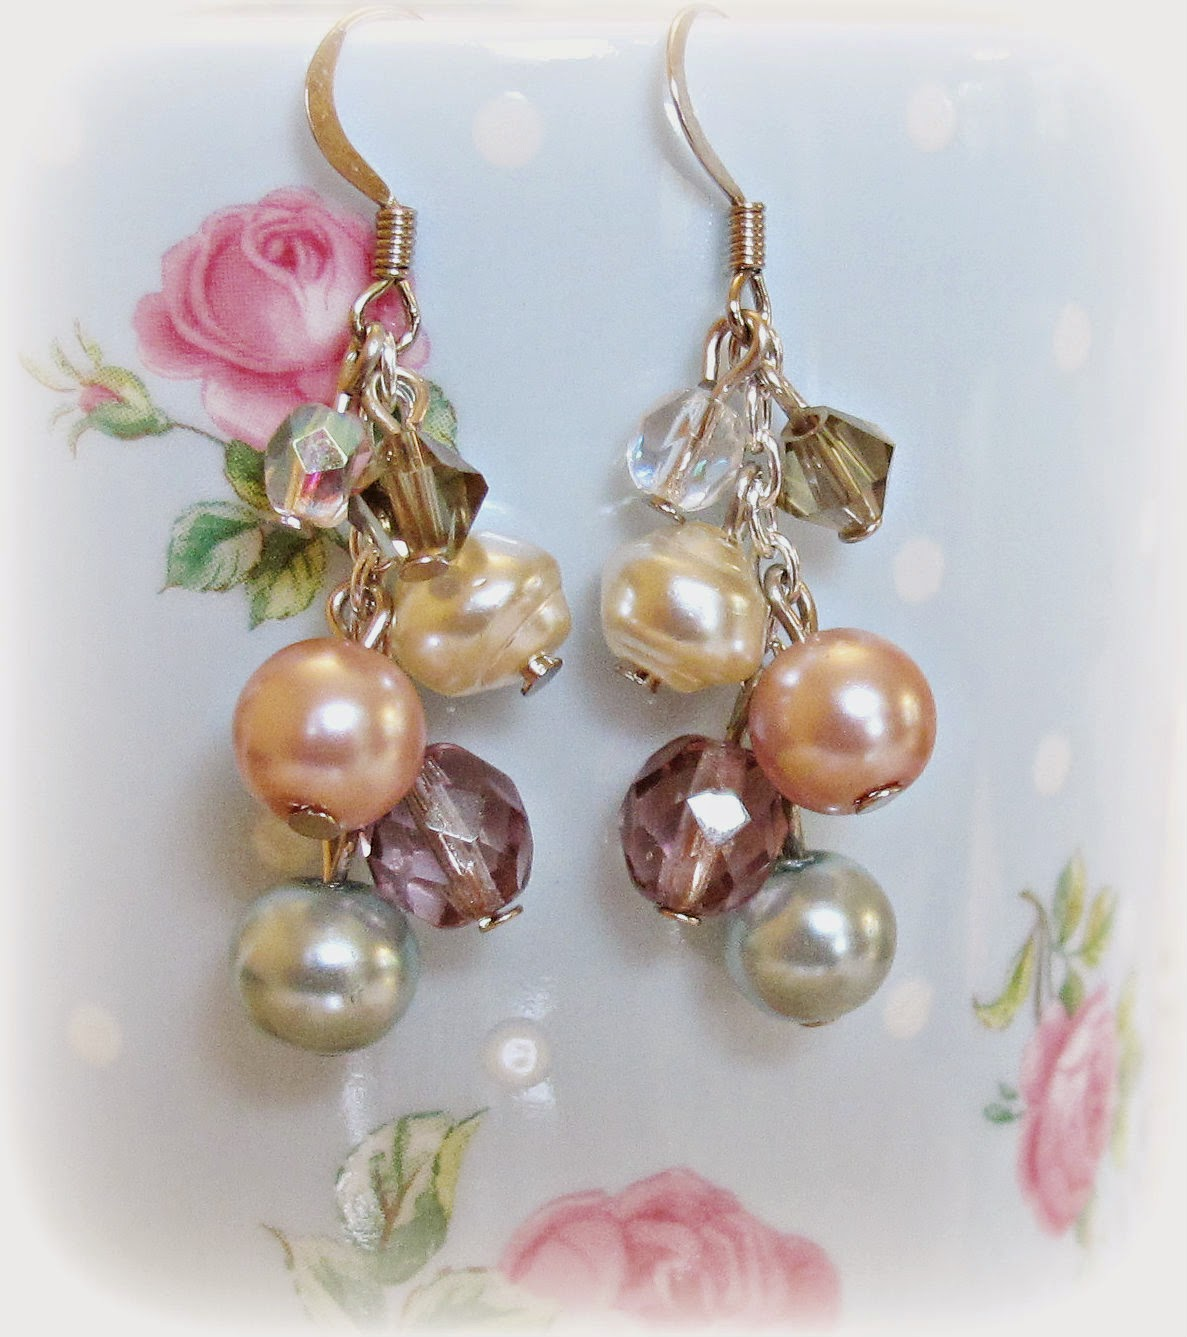 image multidrop earrings glass pearls multicoloured blue pink purple clear smoky grey two cheeky monkeys dangle